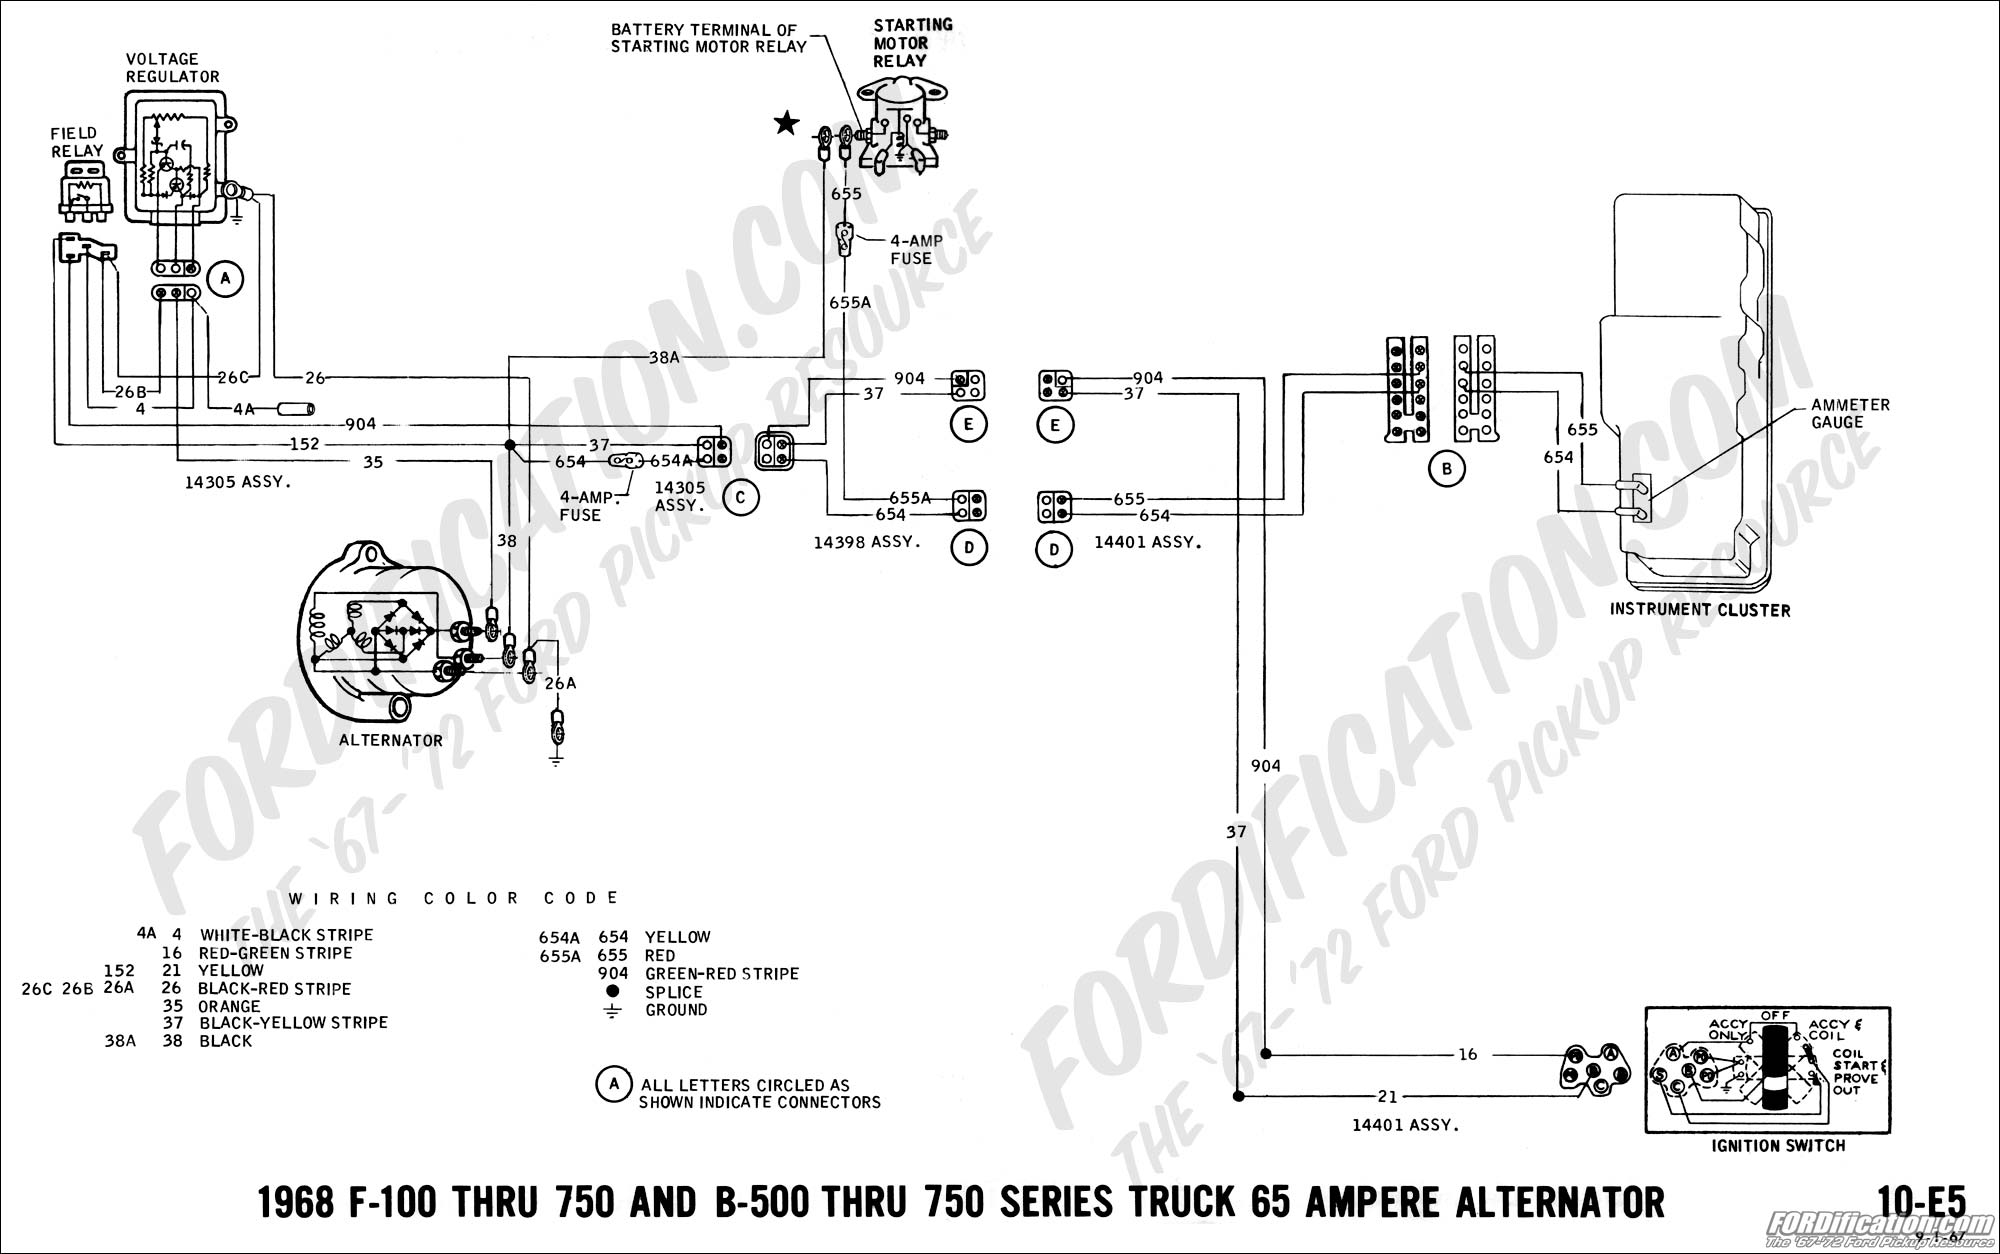 68 07 ford truck technical drawings and schematics section h wiring 1970 ford f100 turn signal wiring diagram at mifinder.co